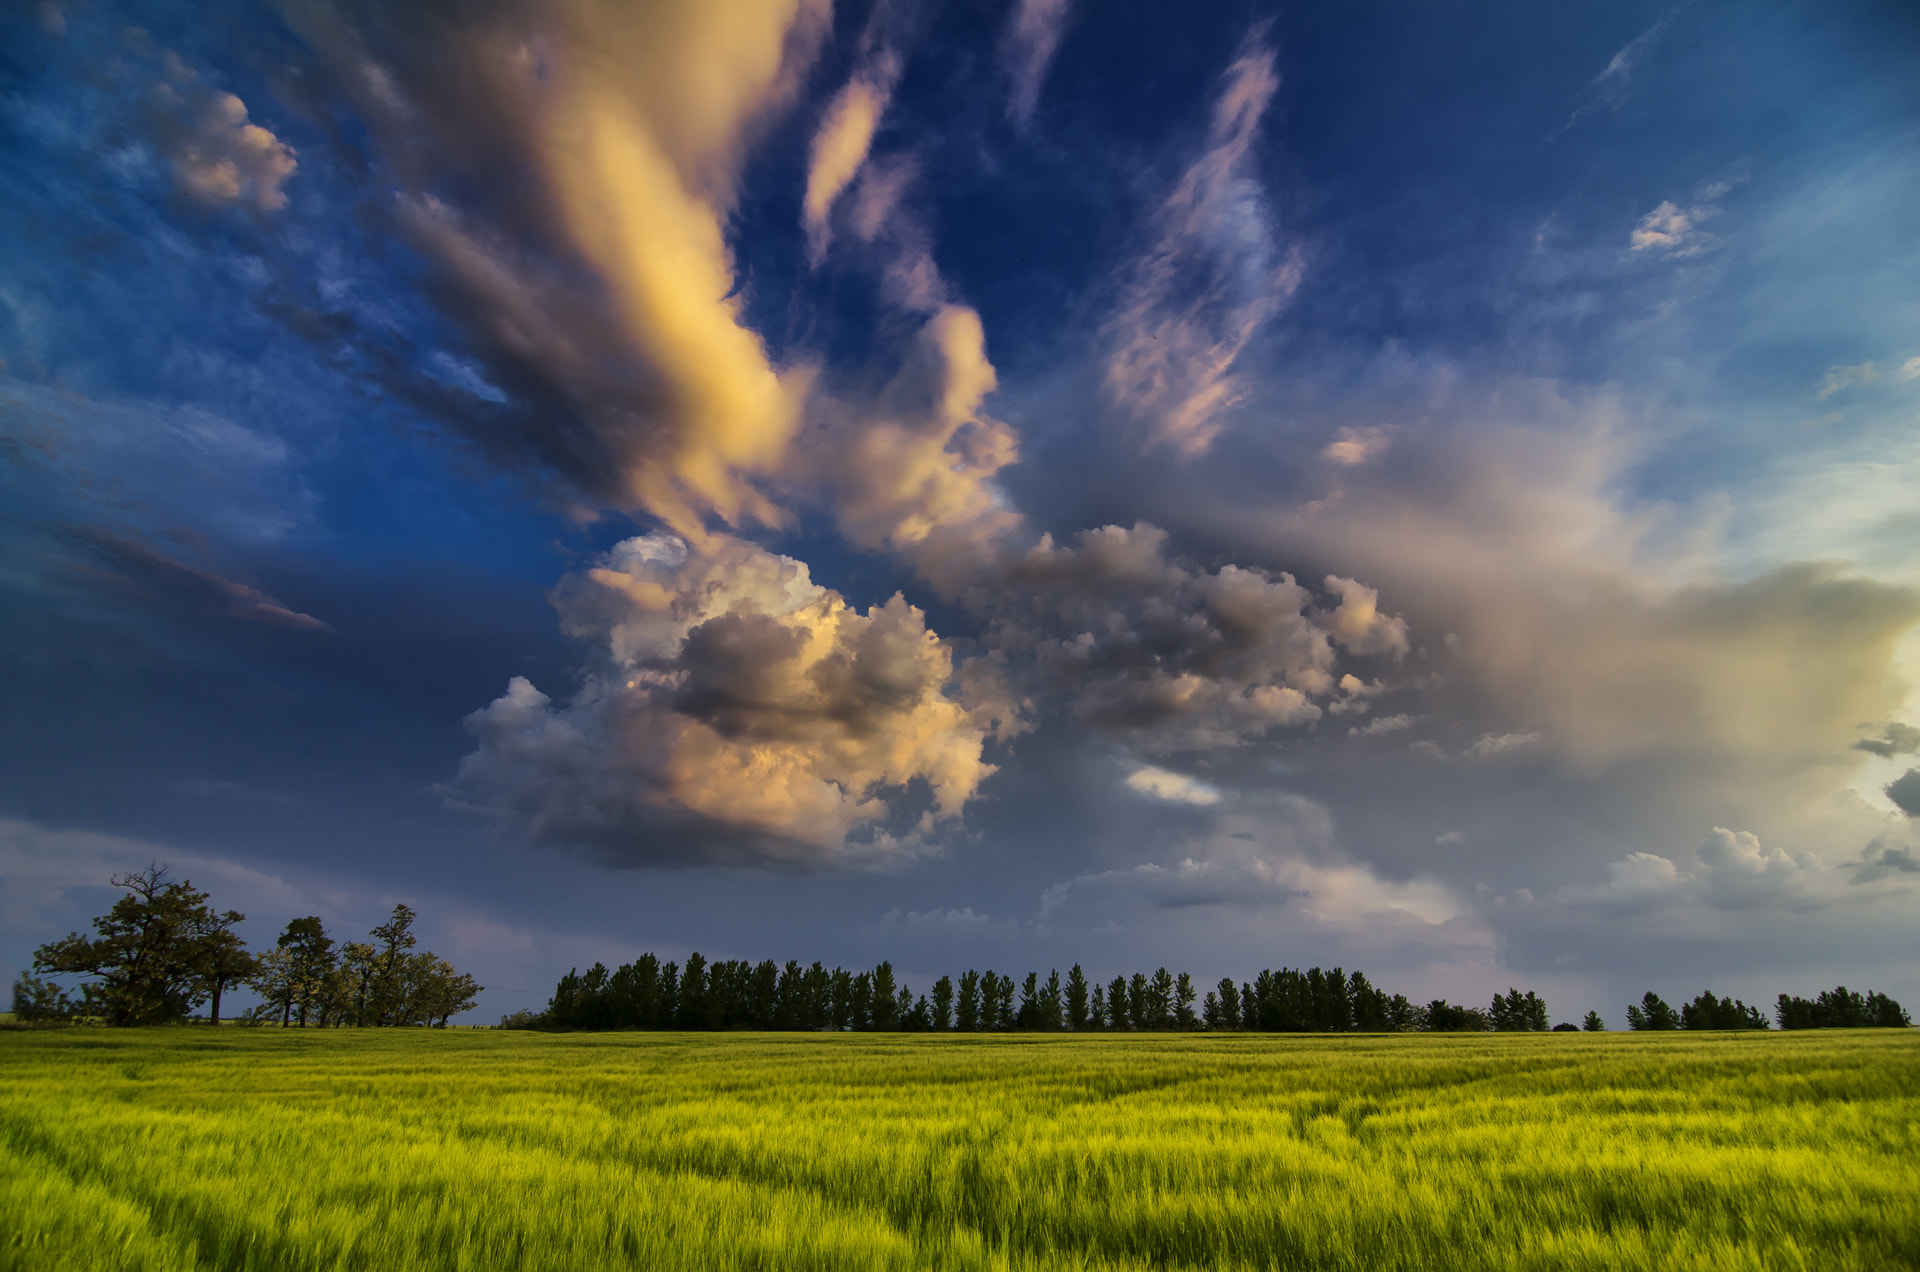 Photograph summertime by Alex Solich on 500px